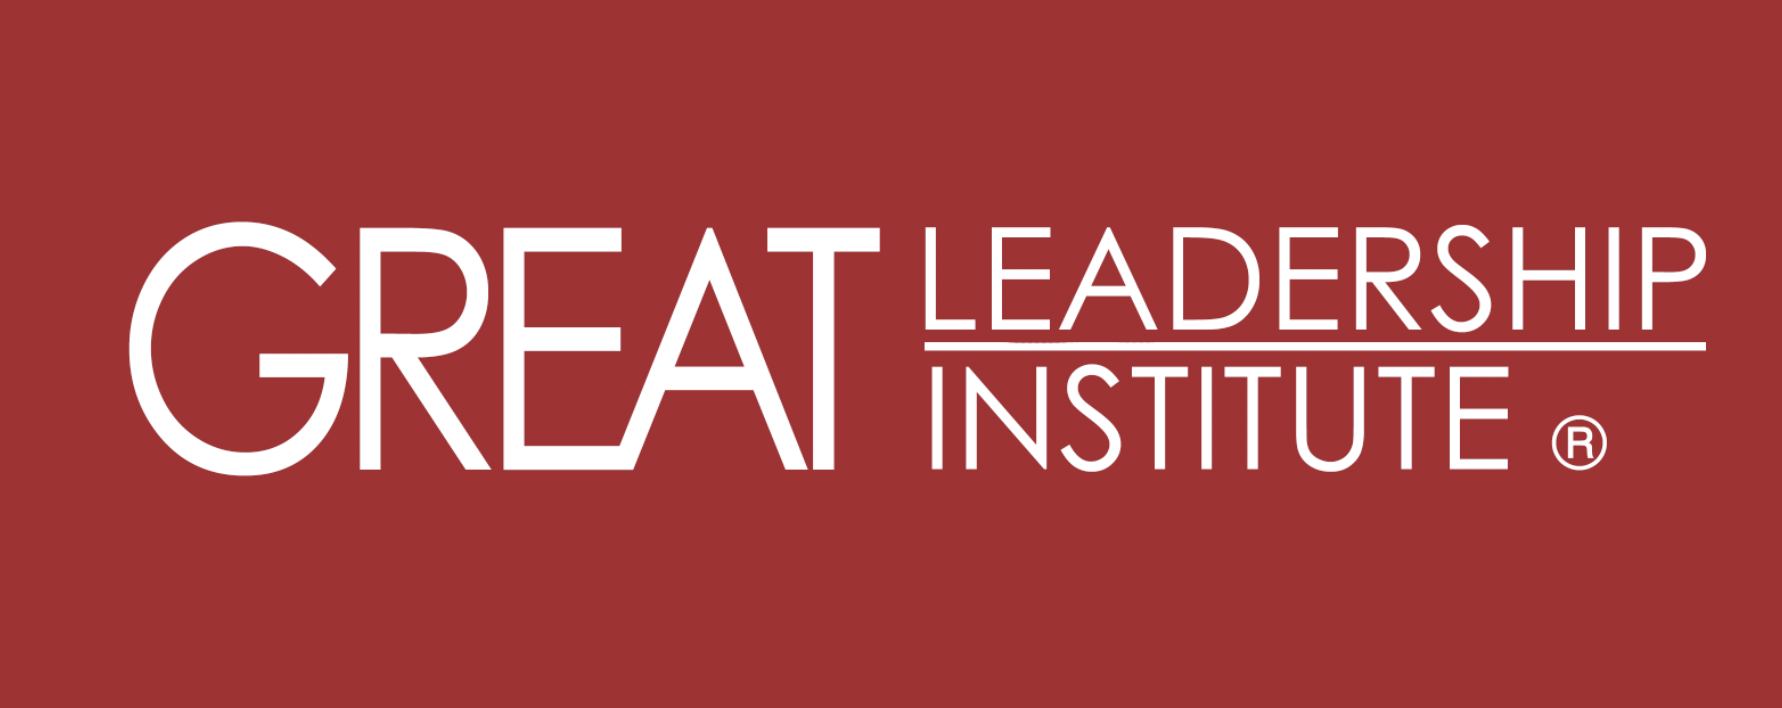 Great Leadership Institute®